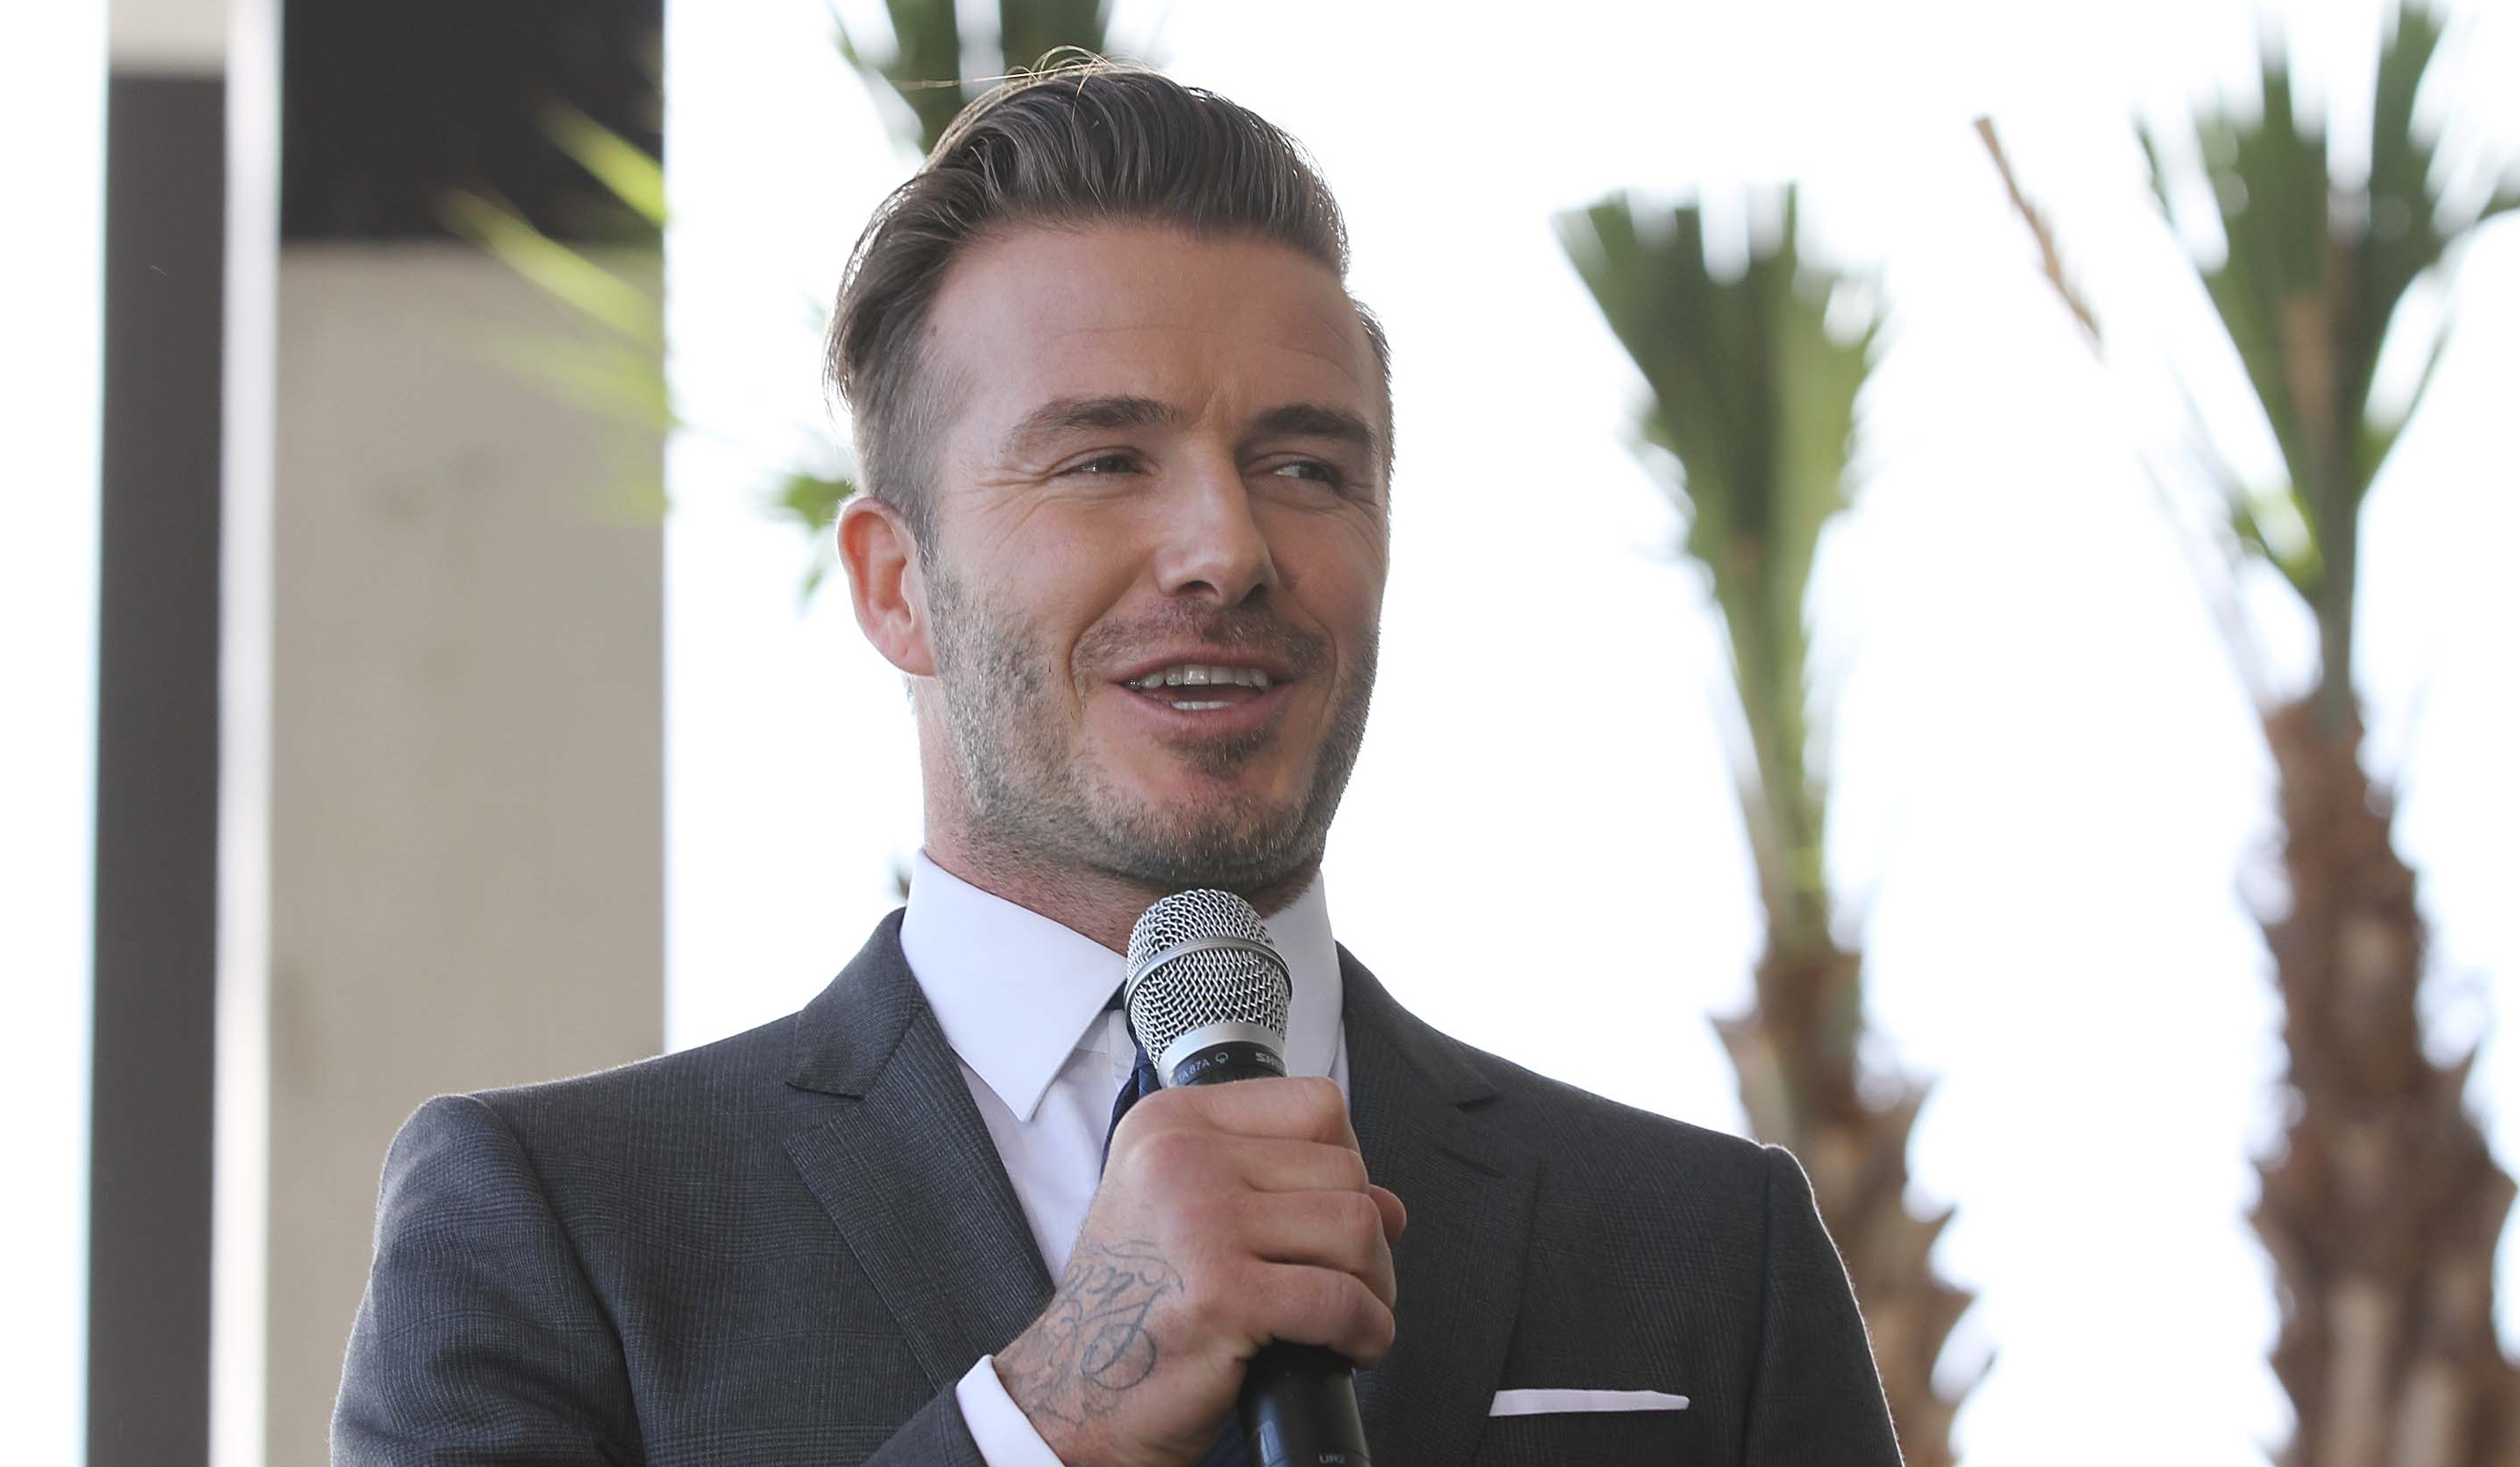 David Beckham's Miami Soccer Club Should Begin Play in 2020, According to MLS Commissioner